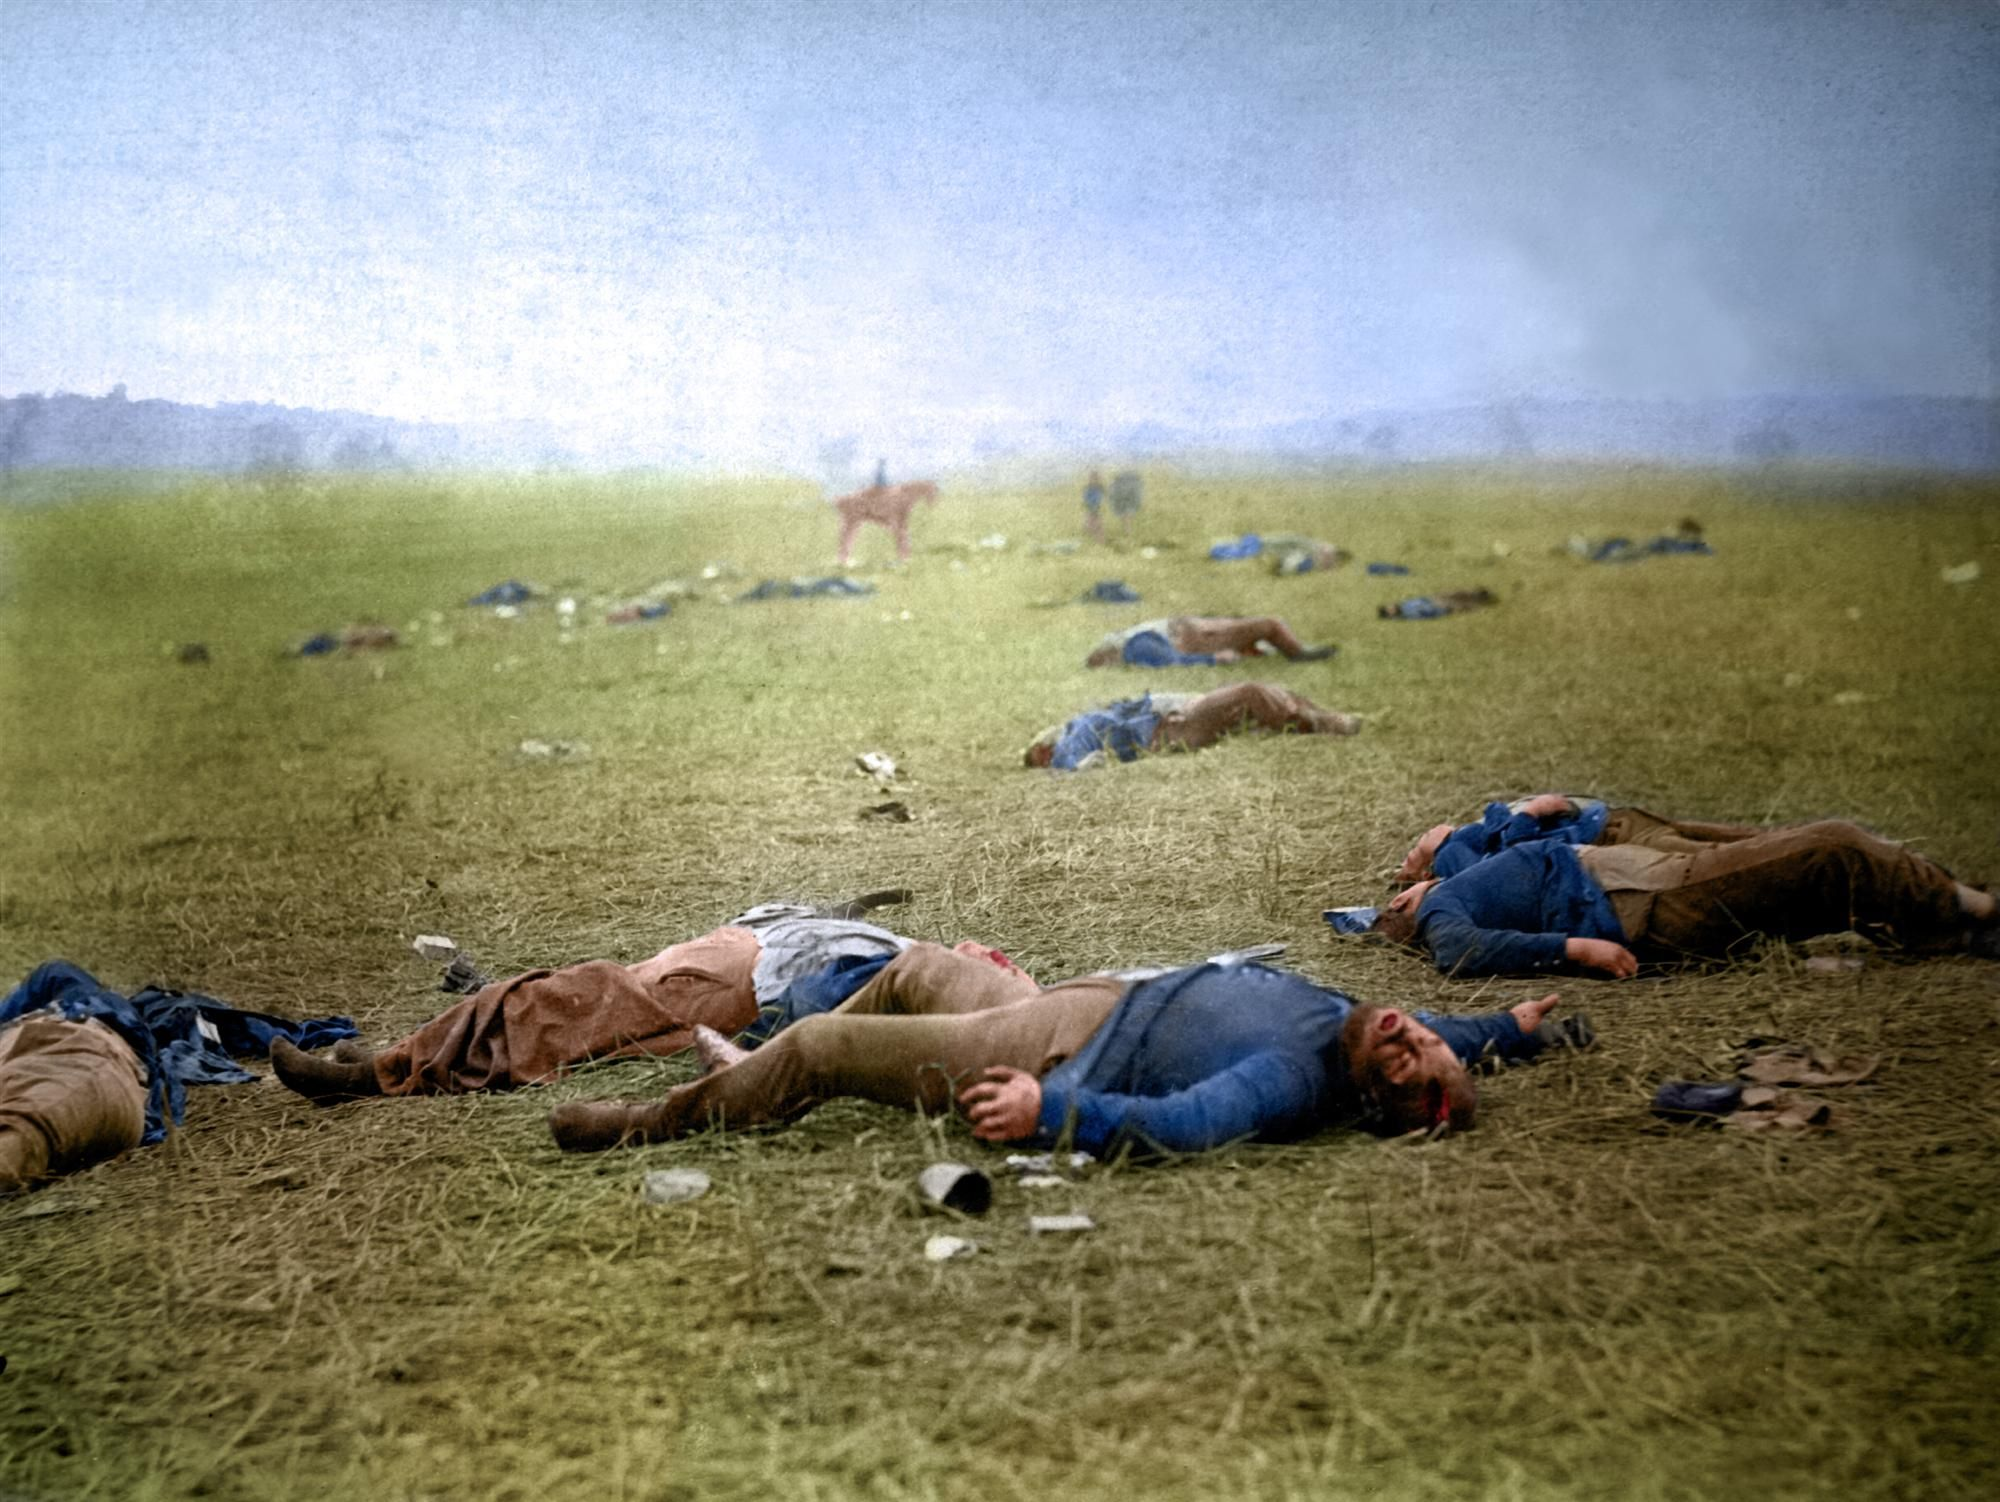 best civil war battle gettysburg pa images federal dead on the field of battle of first day gettysburg pennsylvania mathew brady 1863 one of the earliest war photographs this sobering look at